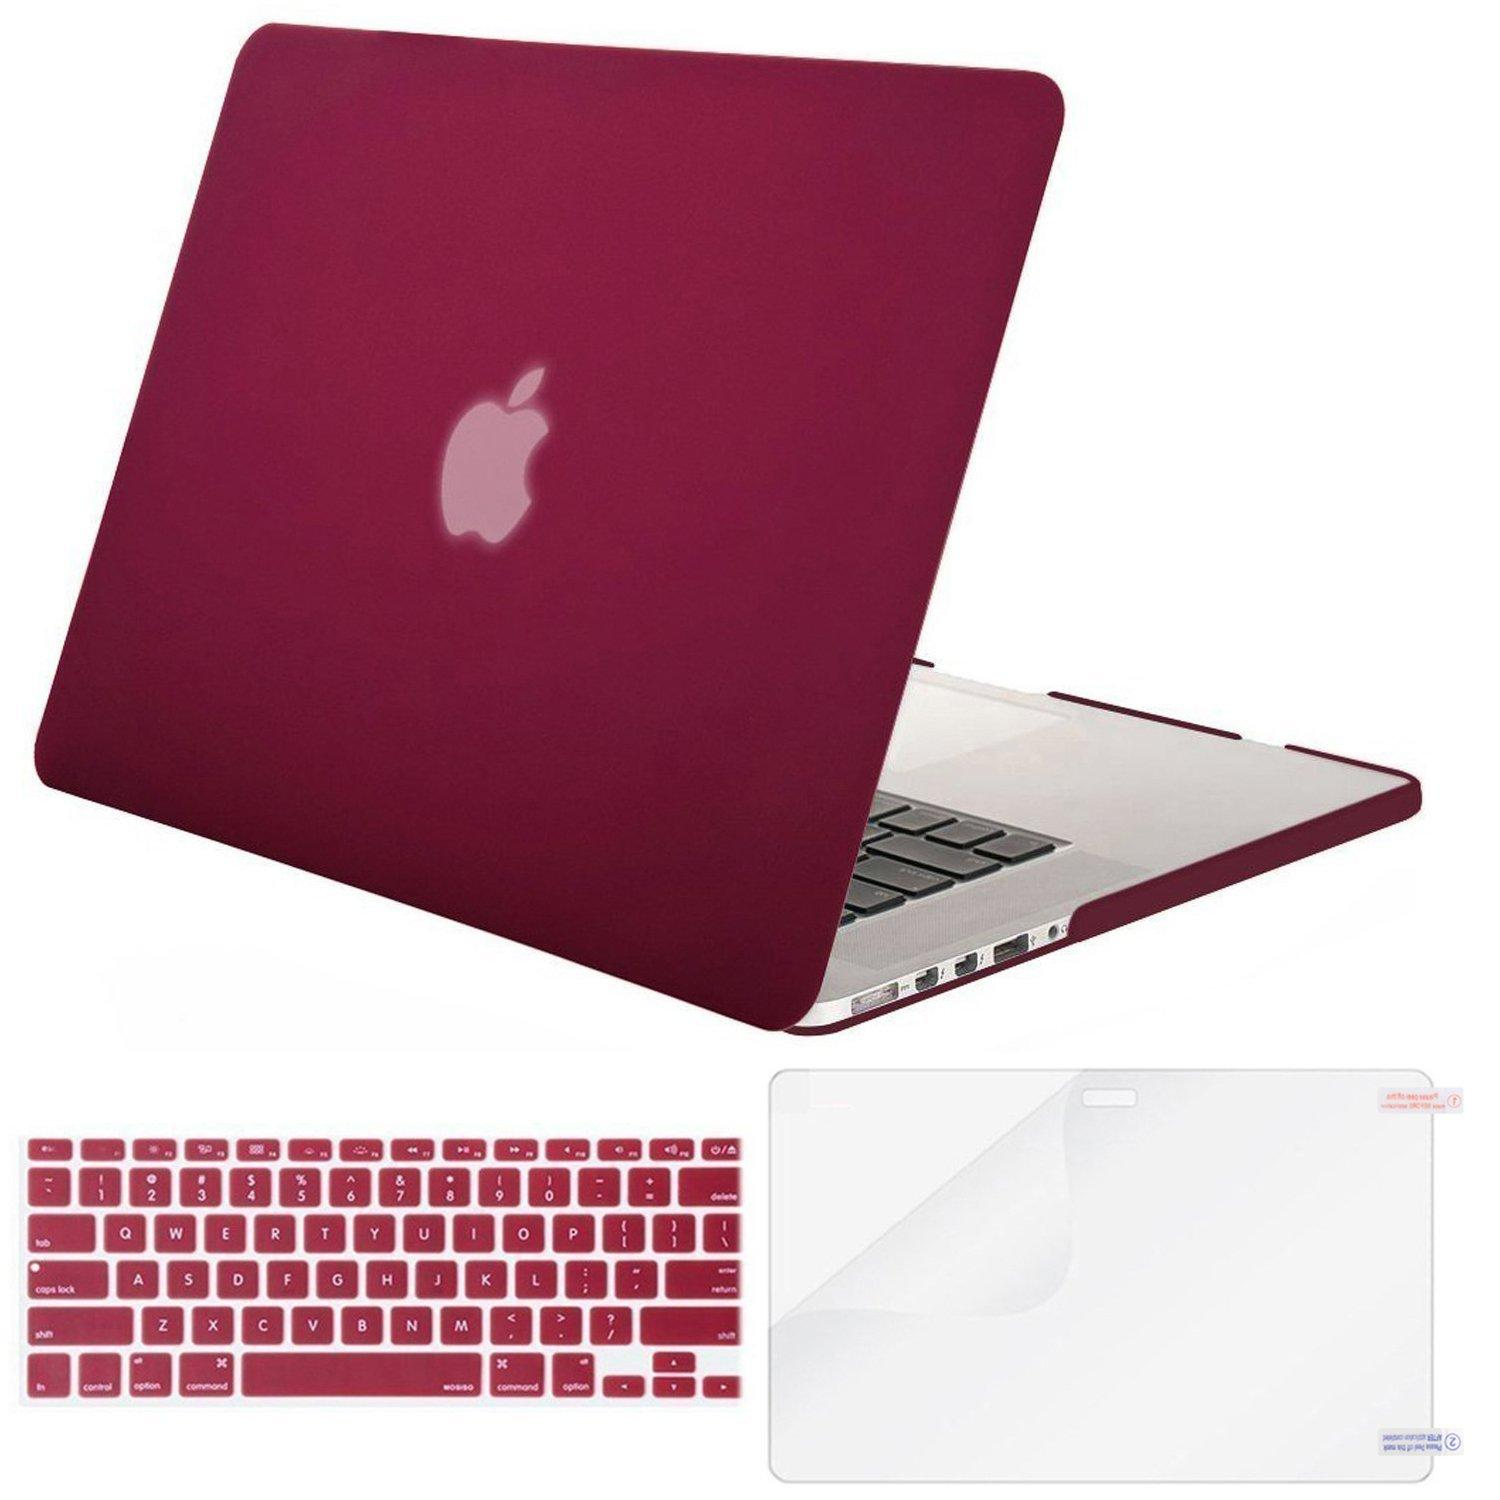 Mac Hard Covers For Sale Apple Prices Brands Specs Original New Rubber Feet Macbook Pro 13 15 17 2009 2012 Year Plastic Case Shell With Keyboard Cover Screen Protector Compatible Air Inch